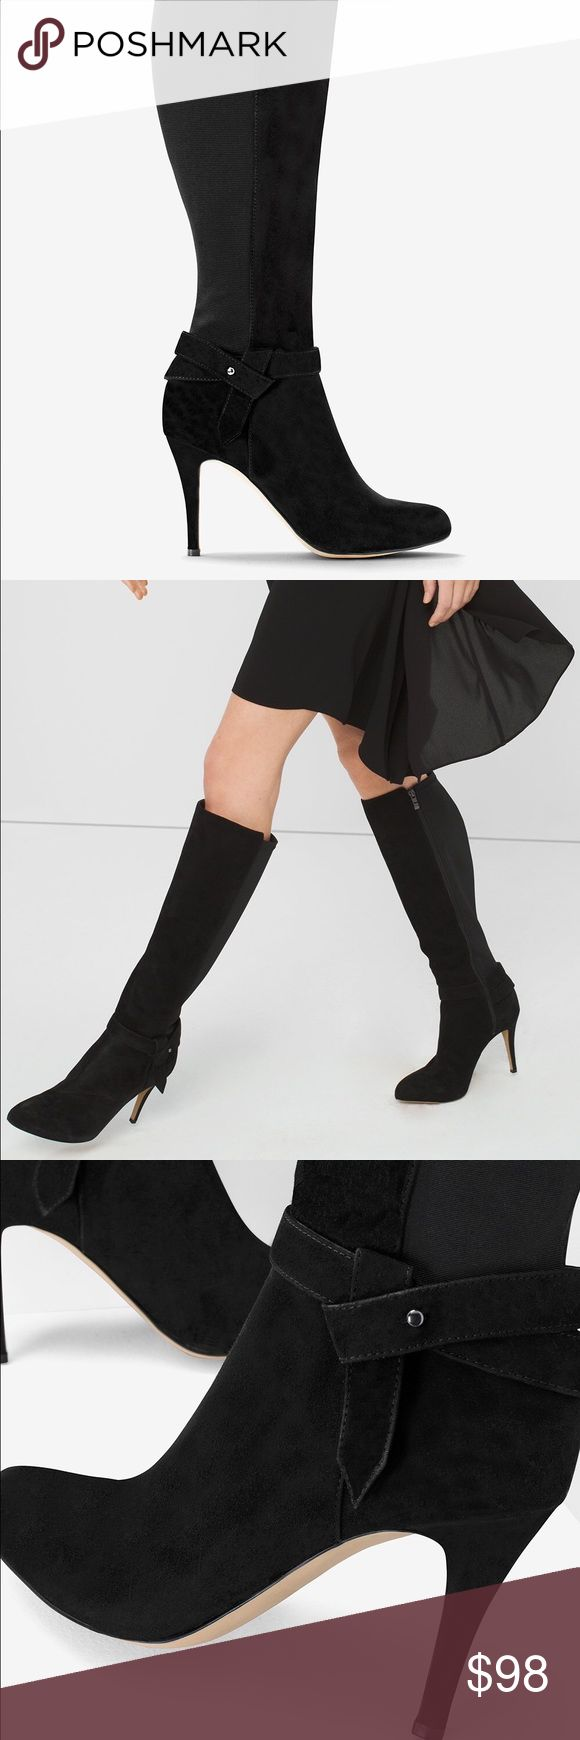 SUEDE 50/50 STRETCH HEELED BOOTS SUEDE 50/50 STRETCH HEELED BOOTS  $149.99 $225.00 BLACK  The fall favorite with a twist—these knee-high black suede boots feature wrapped straps and a stretch gore back for comfort through the calves. An absolute essential with all your LBDs. Suede and stretch knee-high boots Approx. 3 1/2 Suede and manmade materials ; synthetic sold  Suede Caged Heels SUEDE CAGED HEELS. New and never worn. No original box. White House Black Market Shoes Heeled Boots